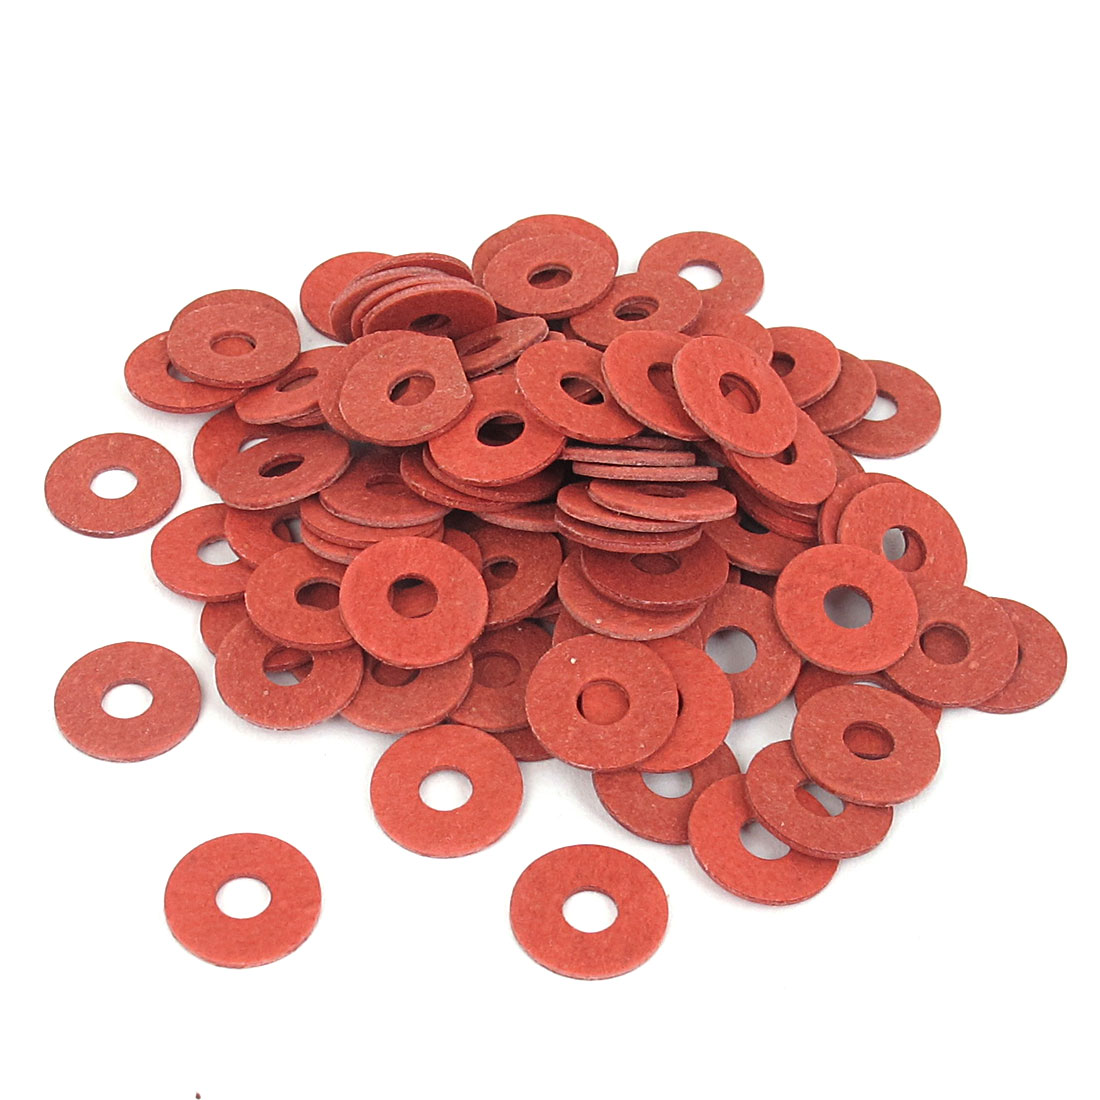 4mmx12mmx1mm Fiber Motherboard Insulating Gasket Flat Washer Red 100pcs